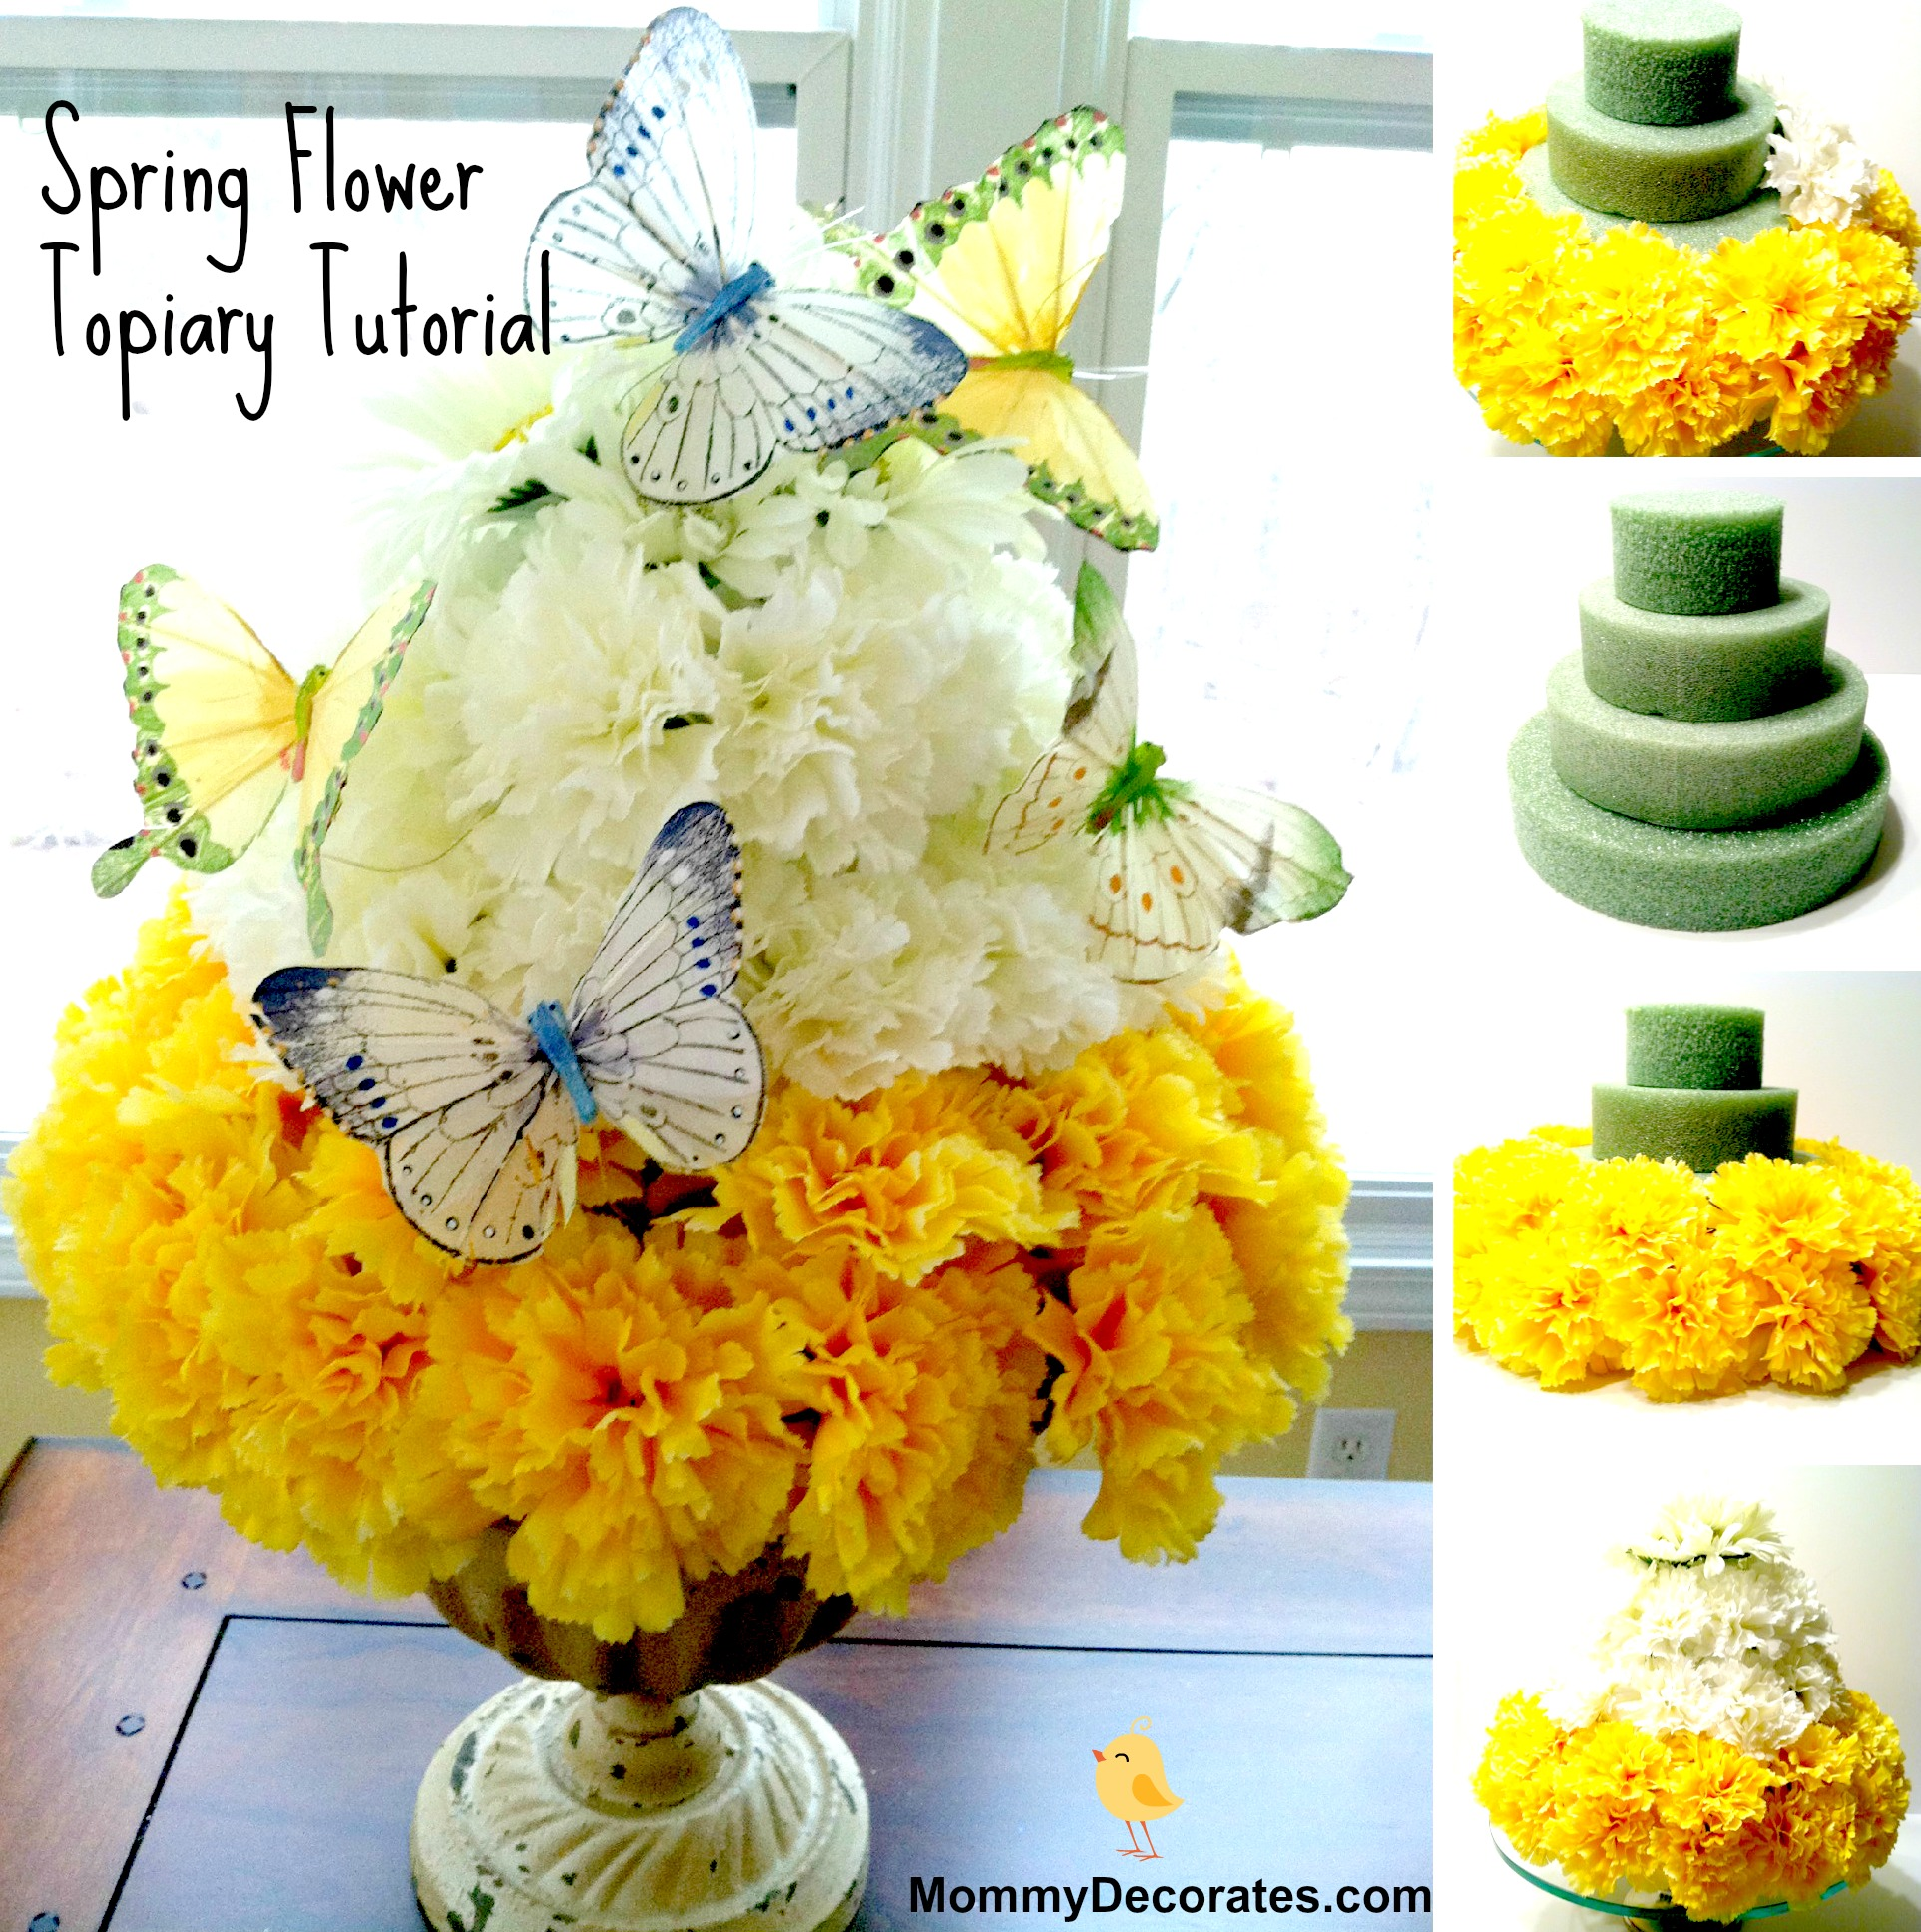 How To Make A Spring Flower Cake A Quick And Easy Tutorial